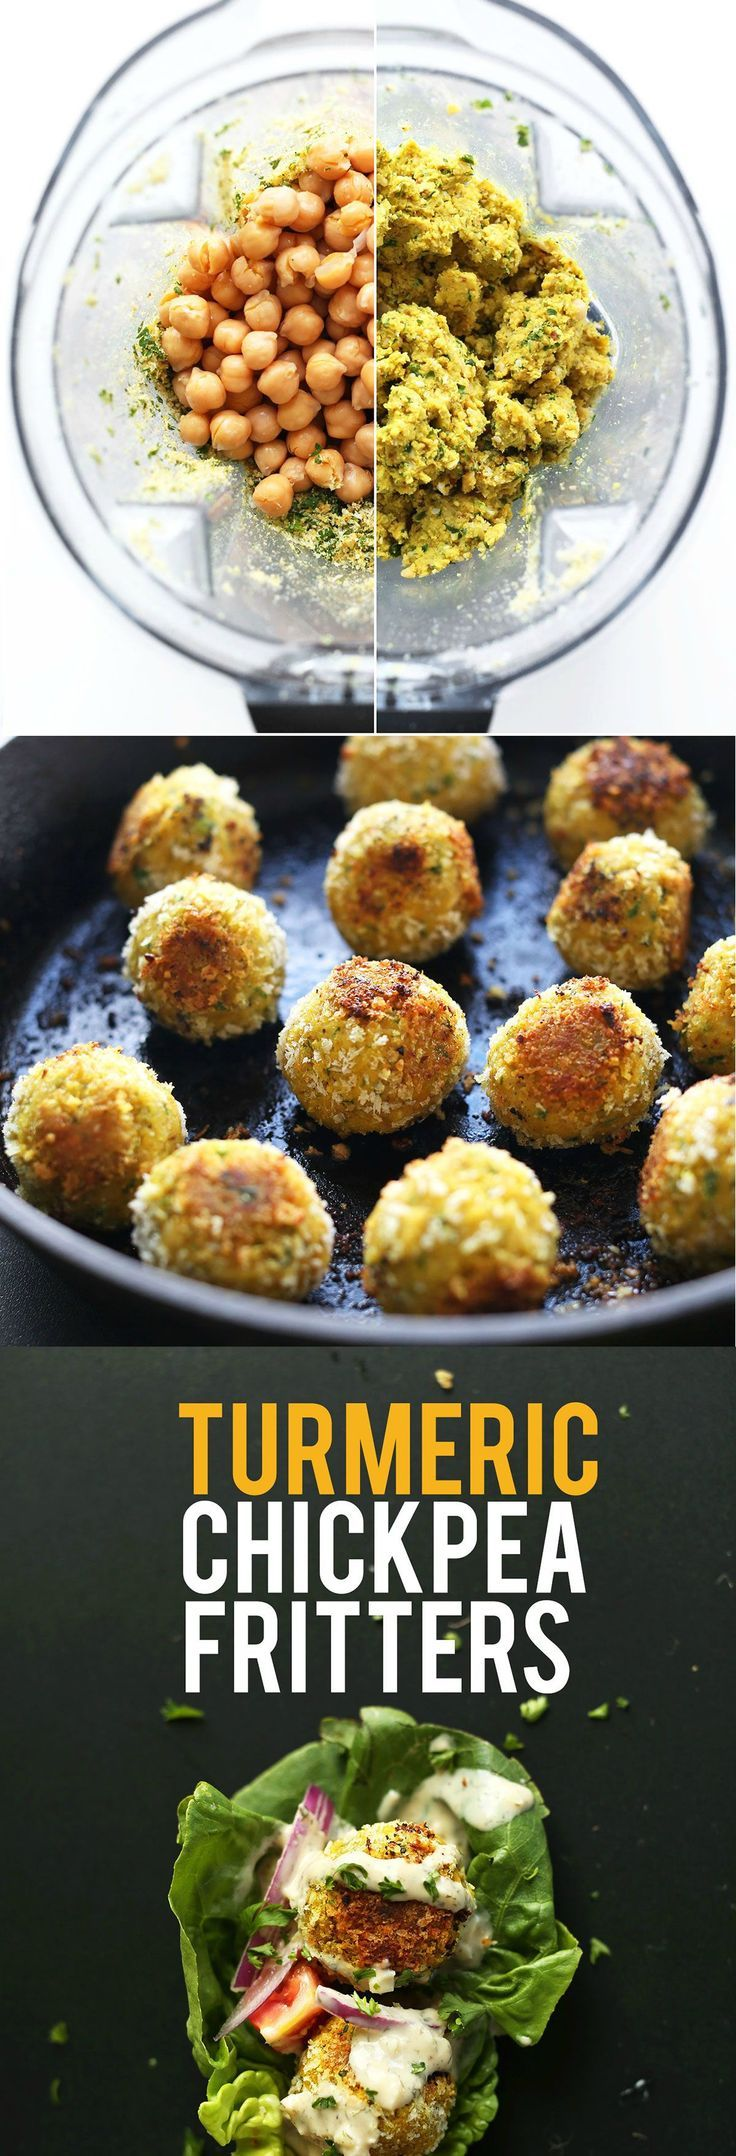 AMAZING 30 Minute TURMERIC Chickpea Fritters! Little falafel-like pillows of bliss | healthy recipe ideas /xhealthyrecipex/ |